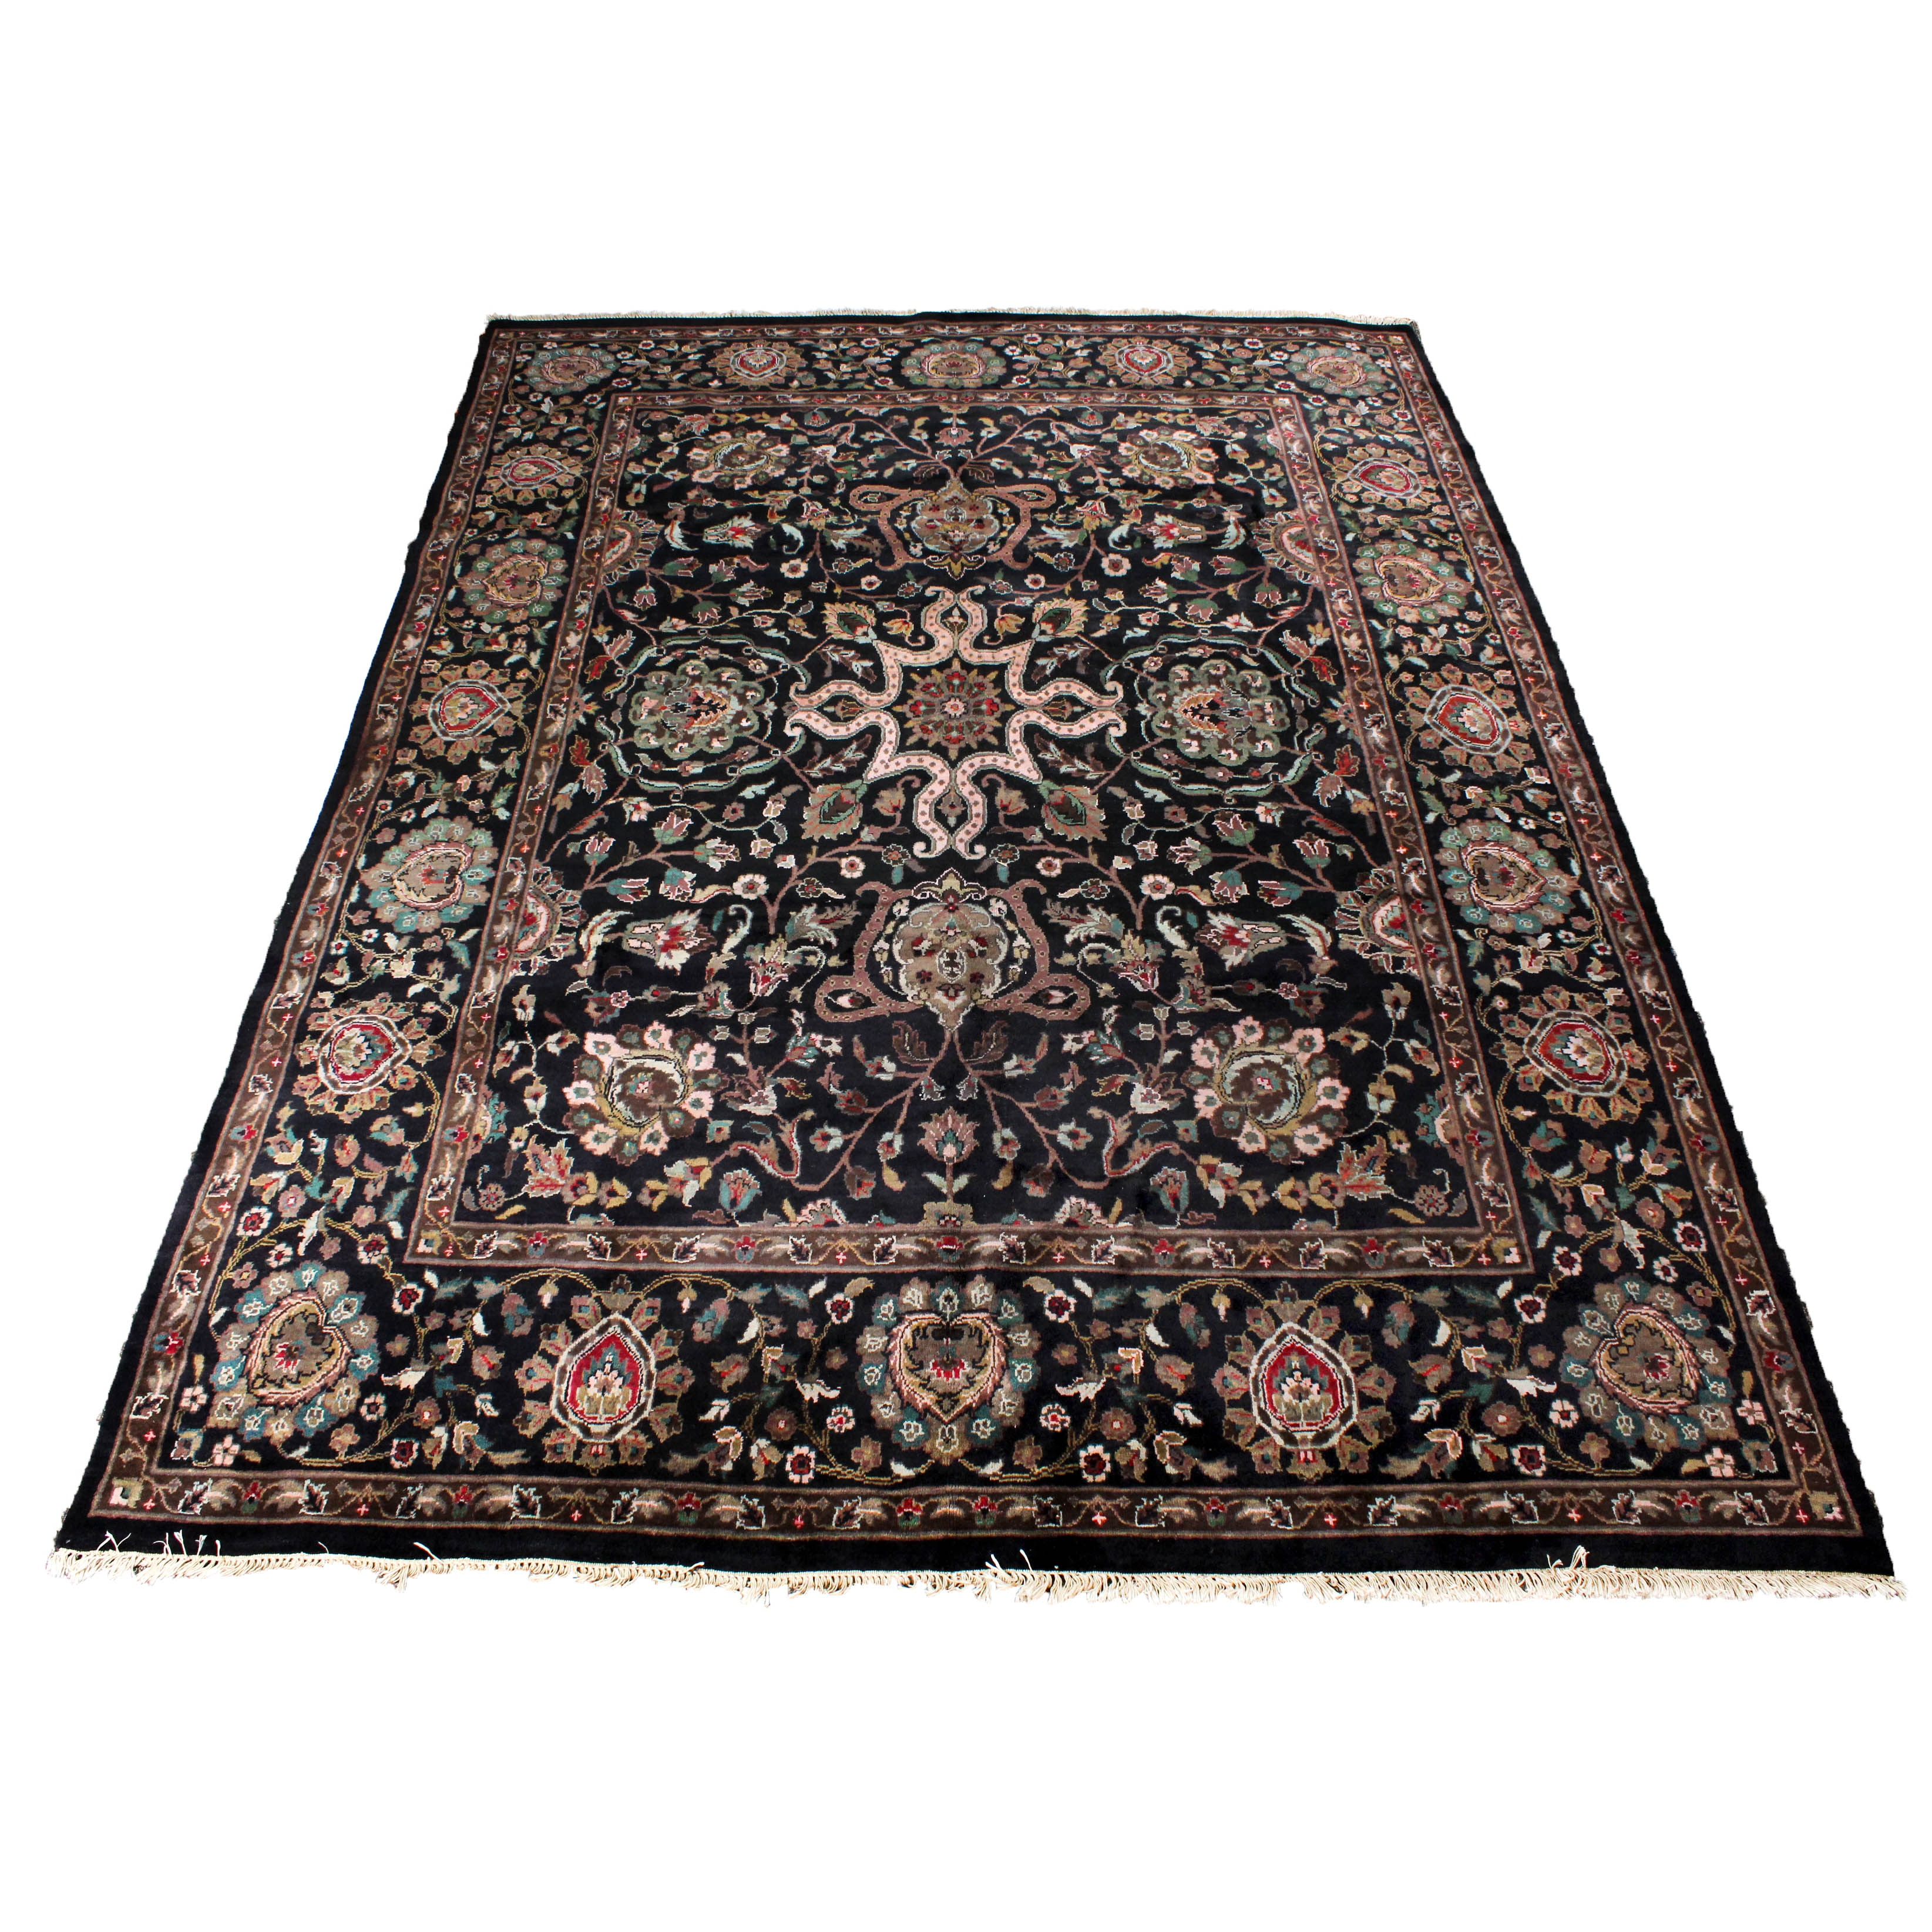 8'9 x 12'4 Finely Hand-Knotted Indo-Persian Kashan Room Size Rug